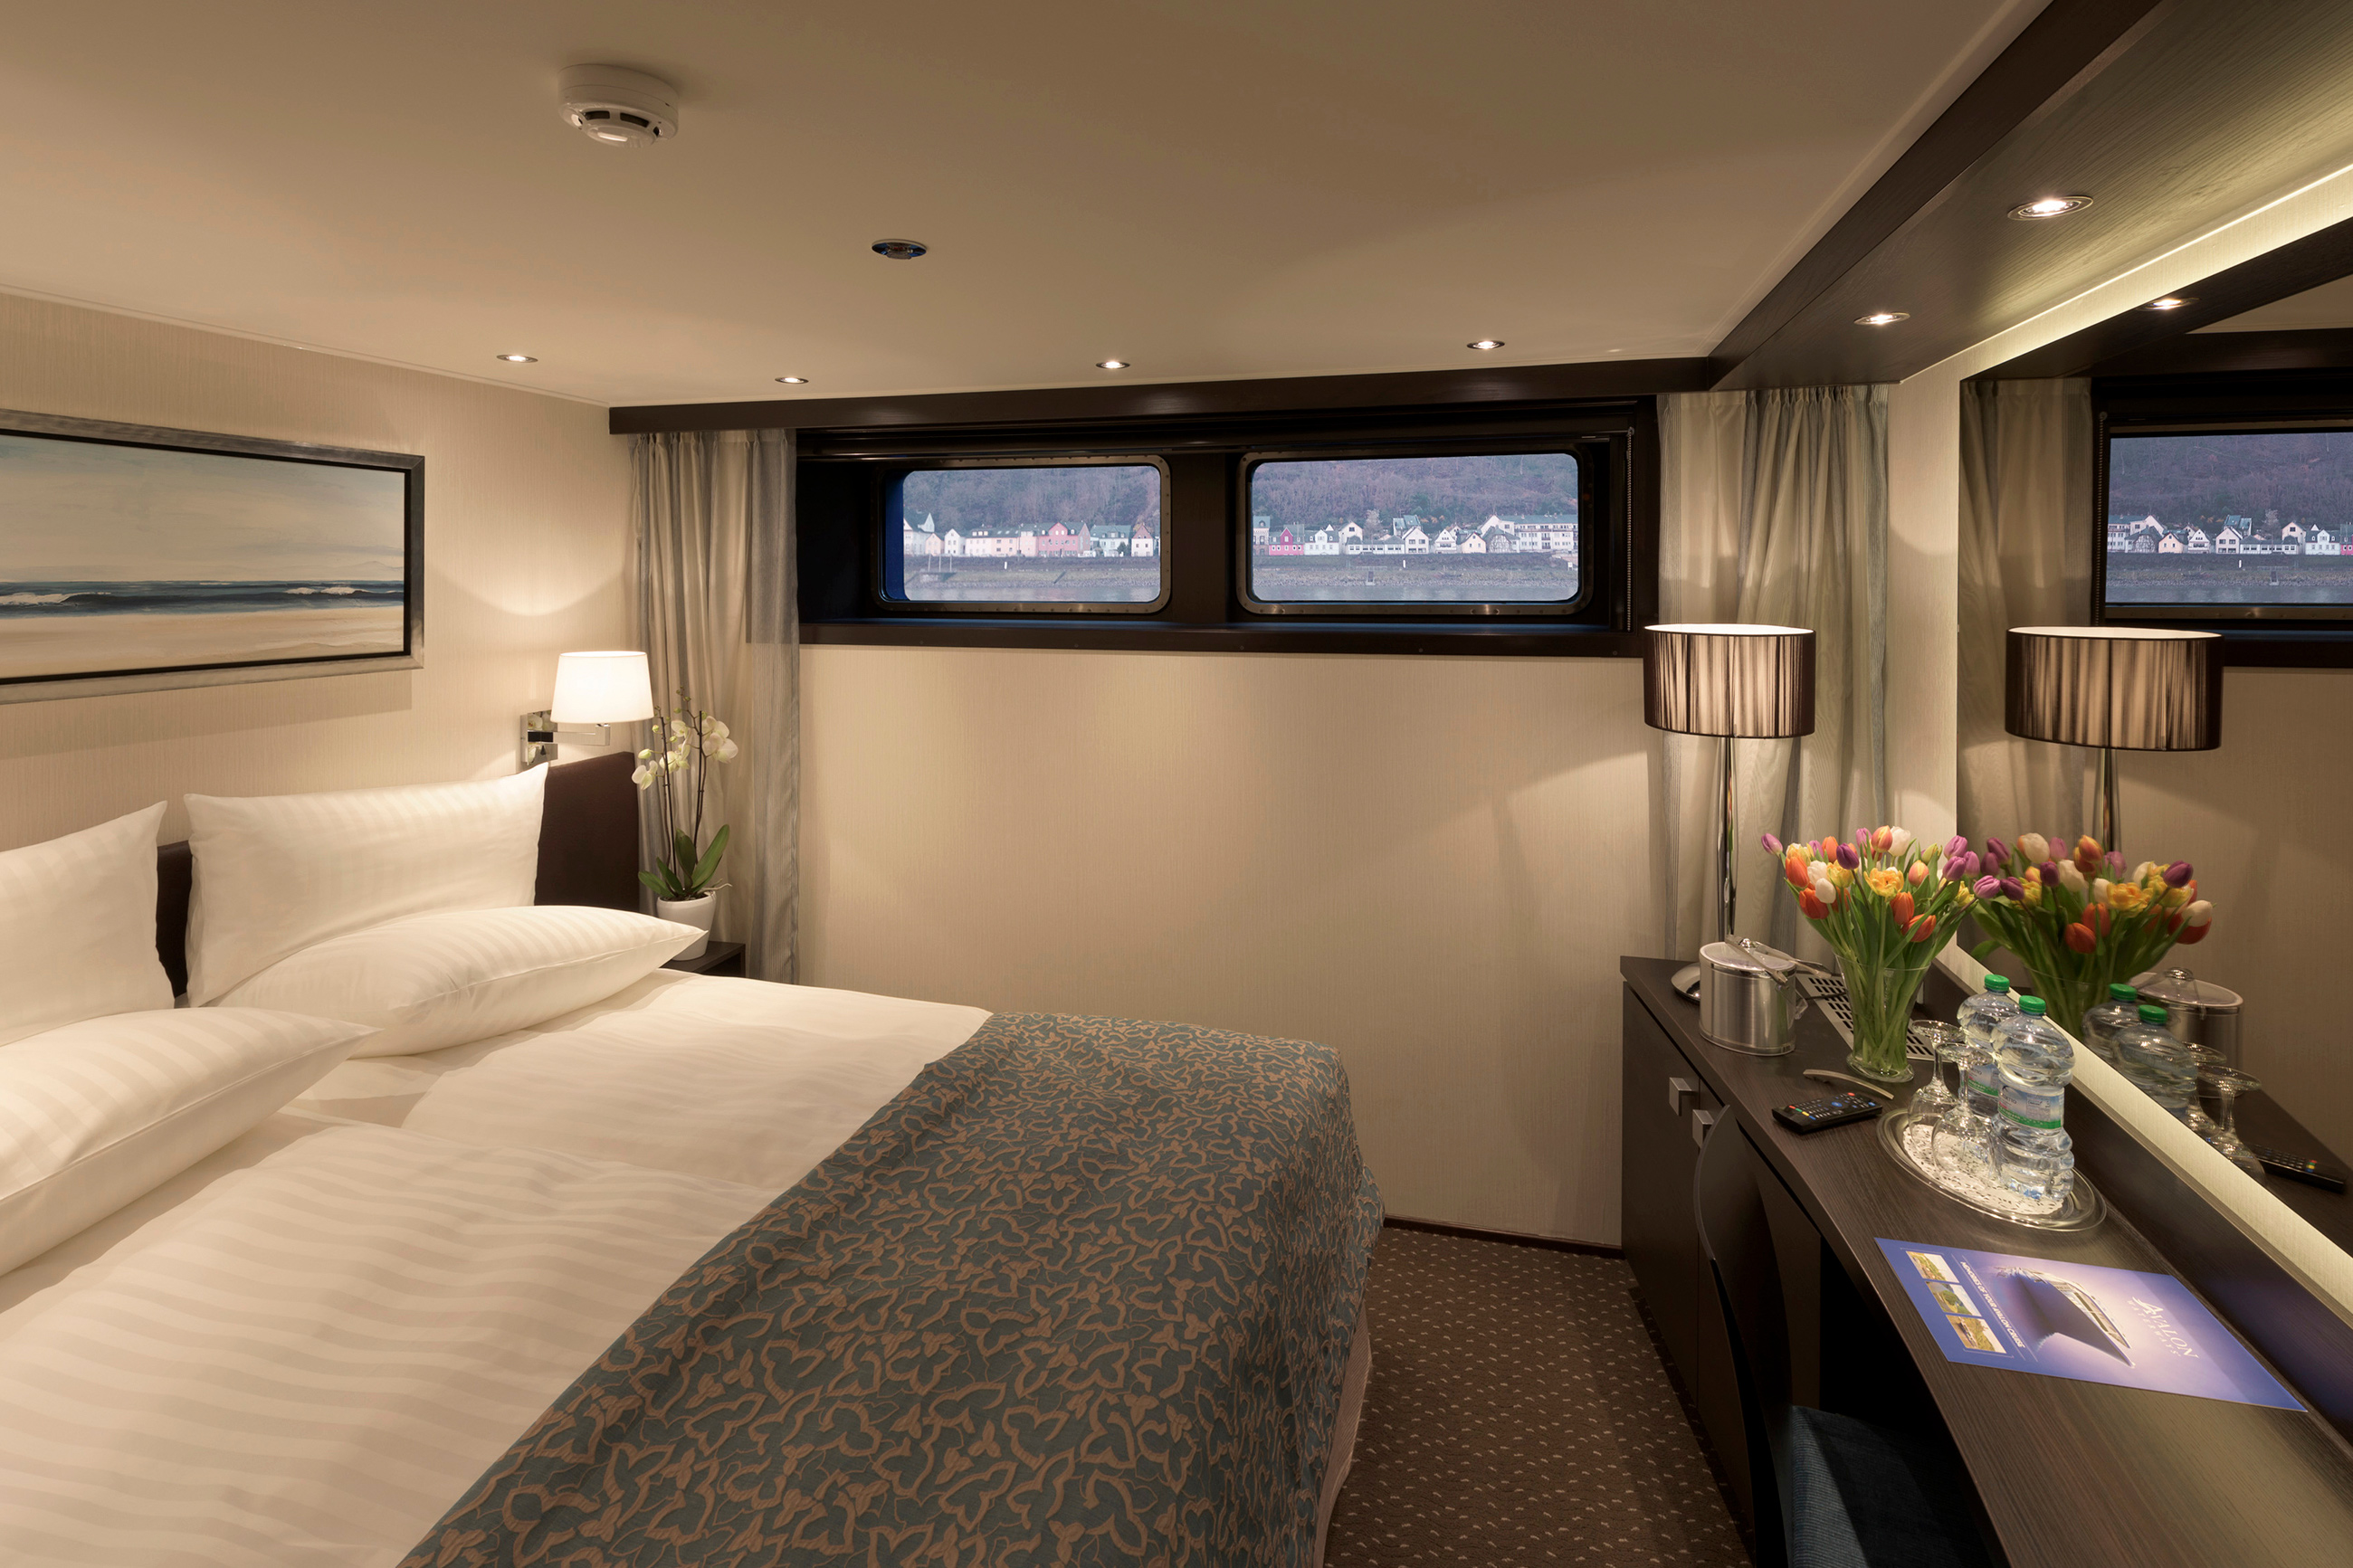 tranquilityii-stateroom.jpg